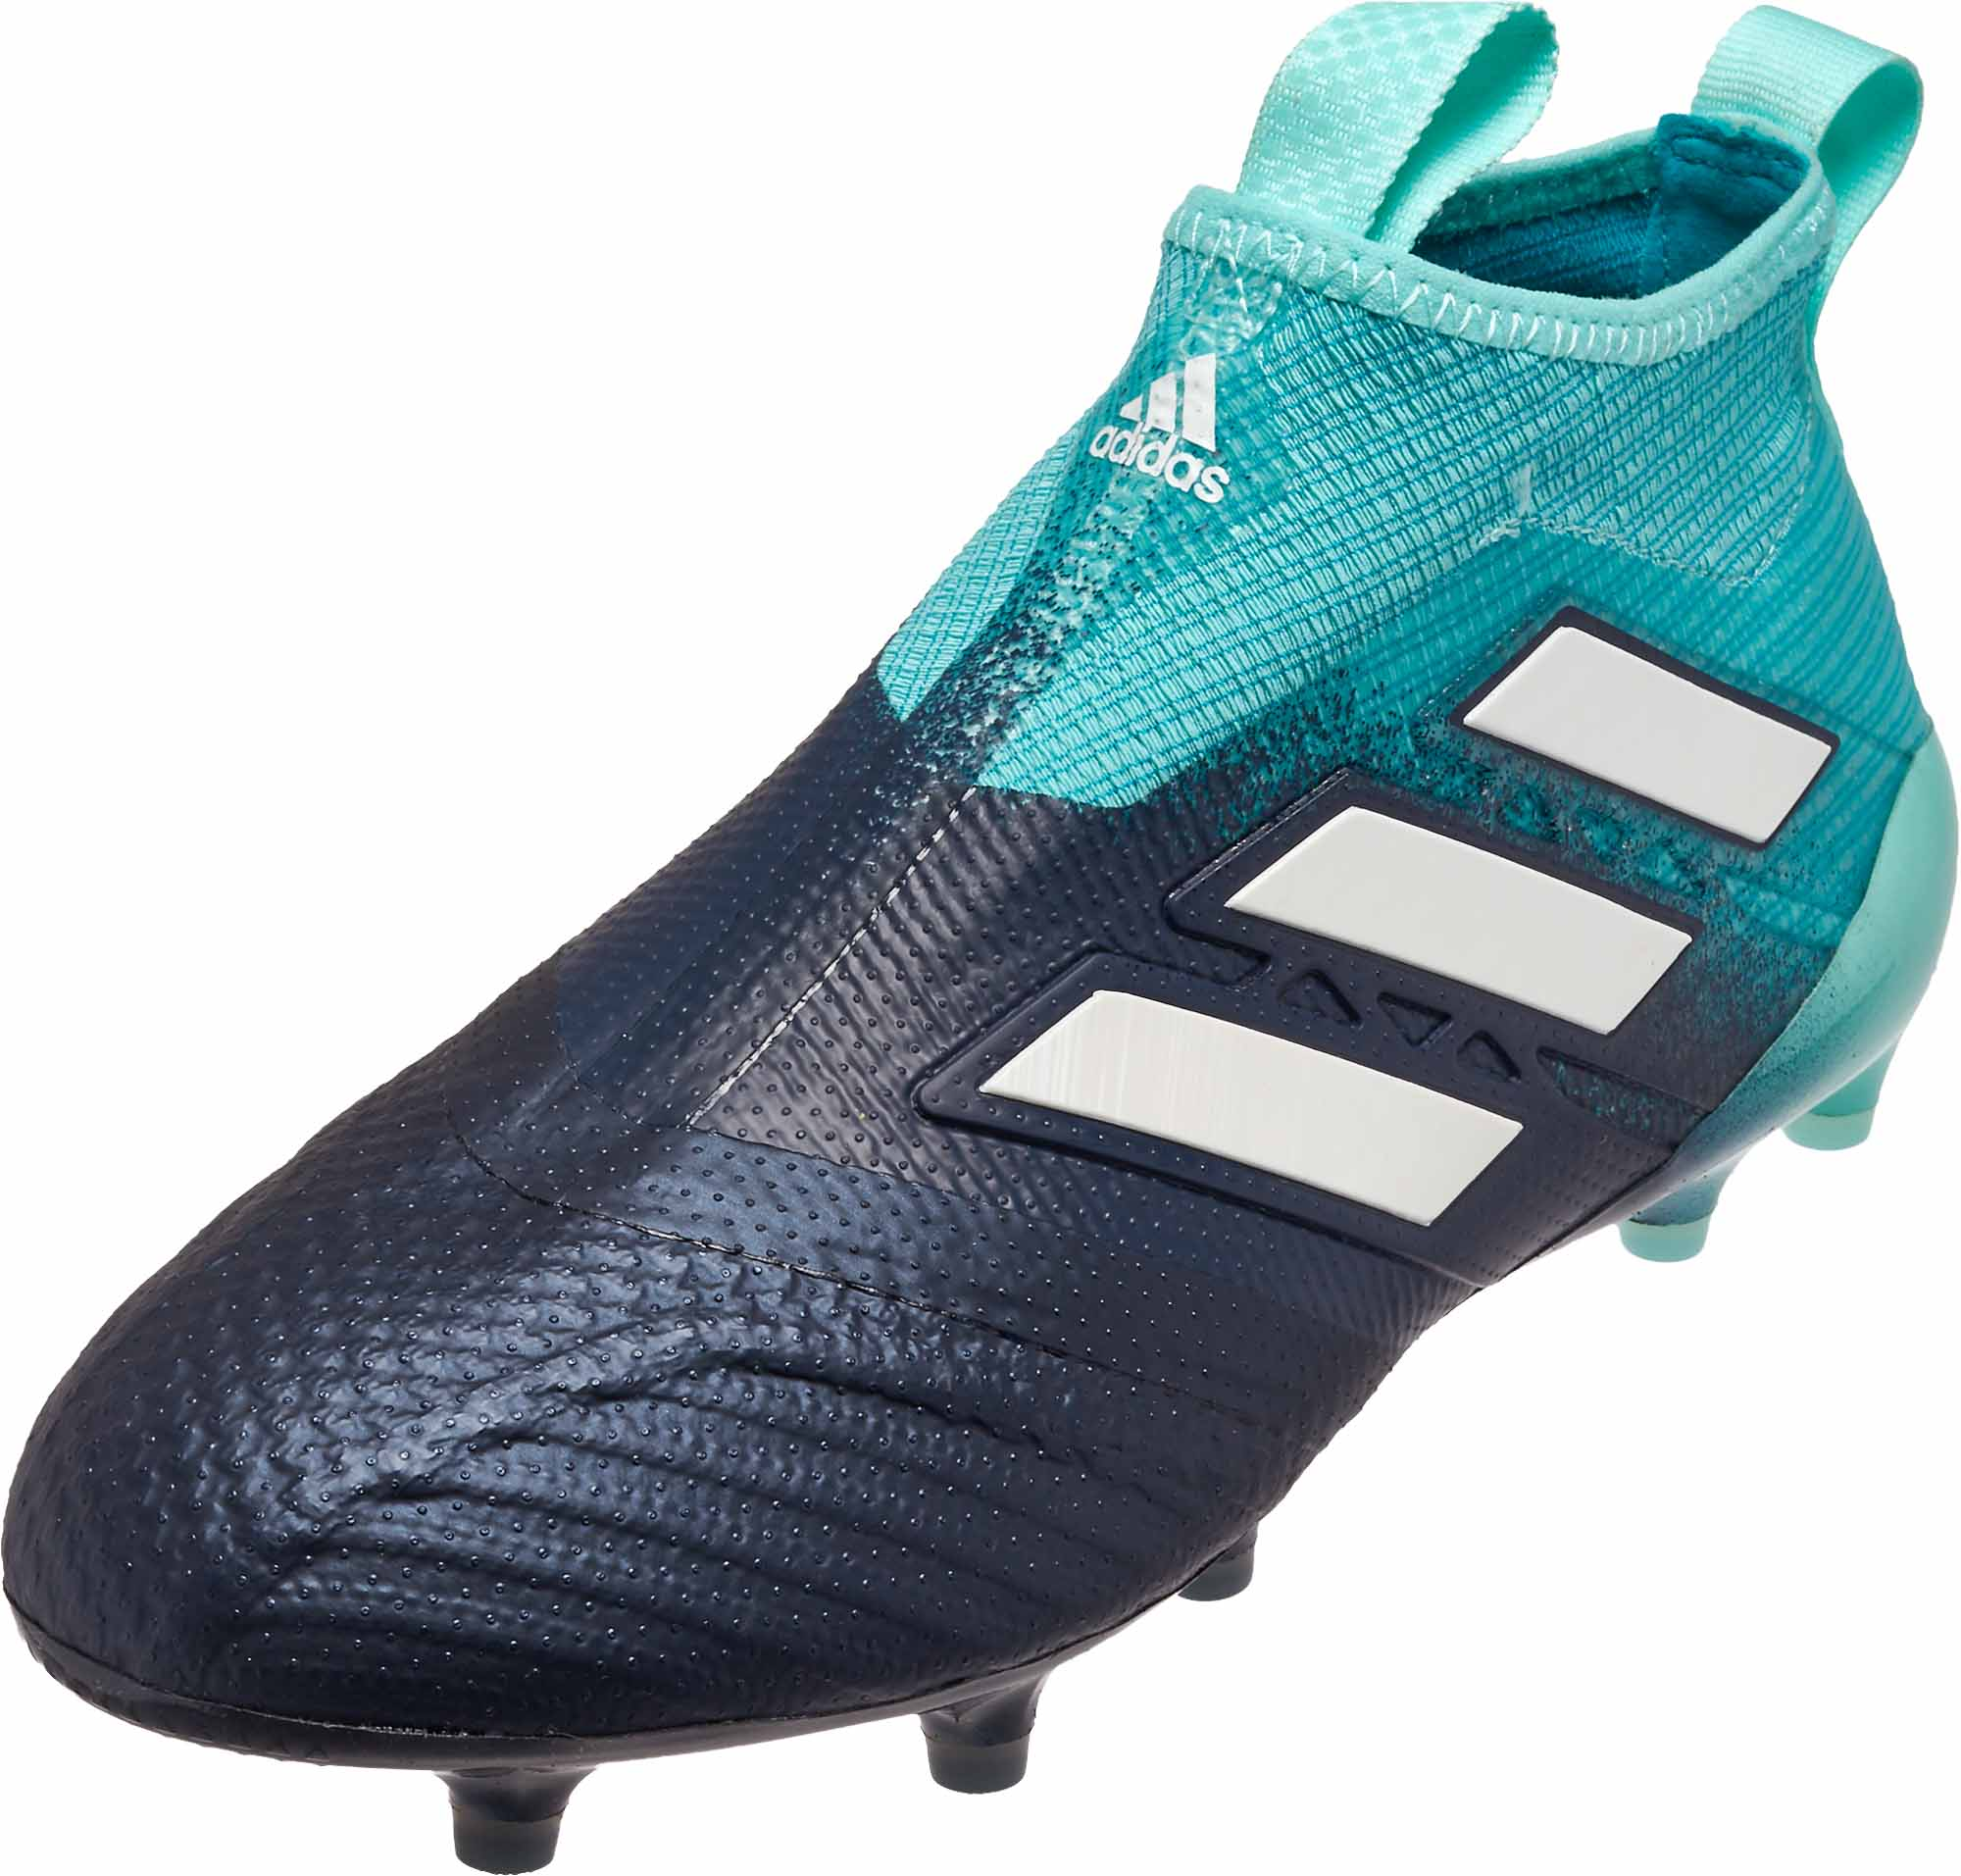 size 40 31ad1 abb31 adidas ACE 17 Purecontrol FG – Energy AquaLegend Ink